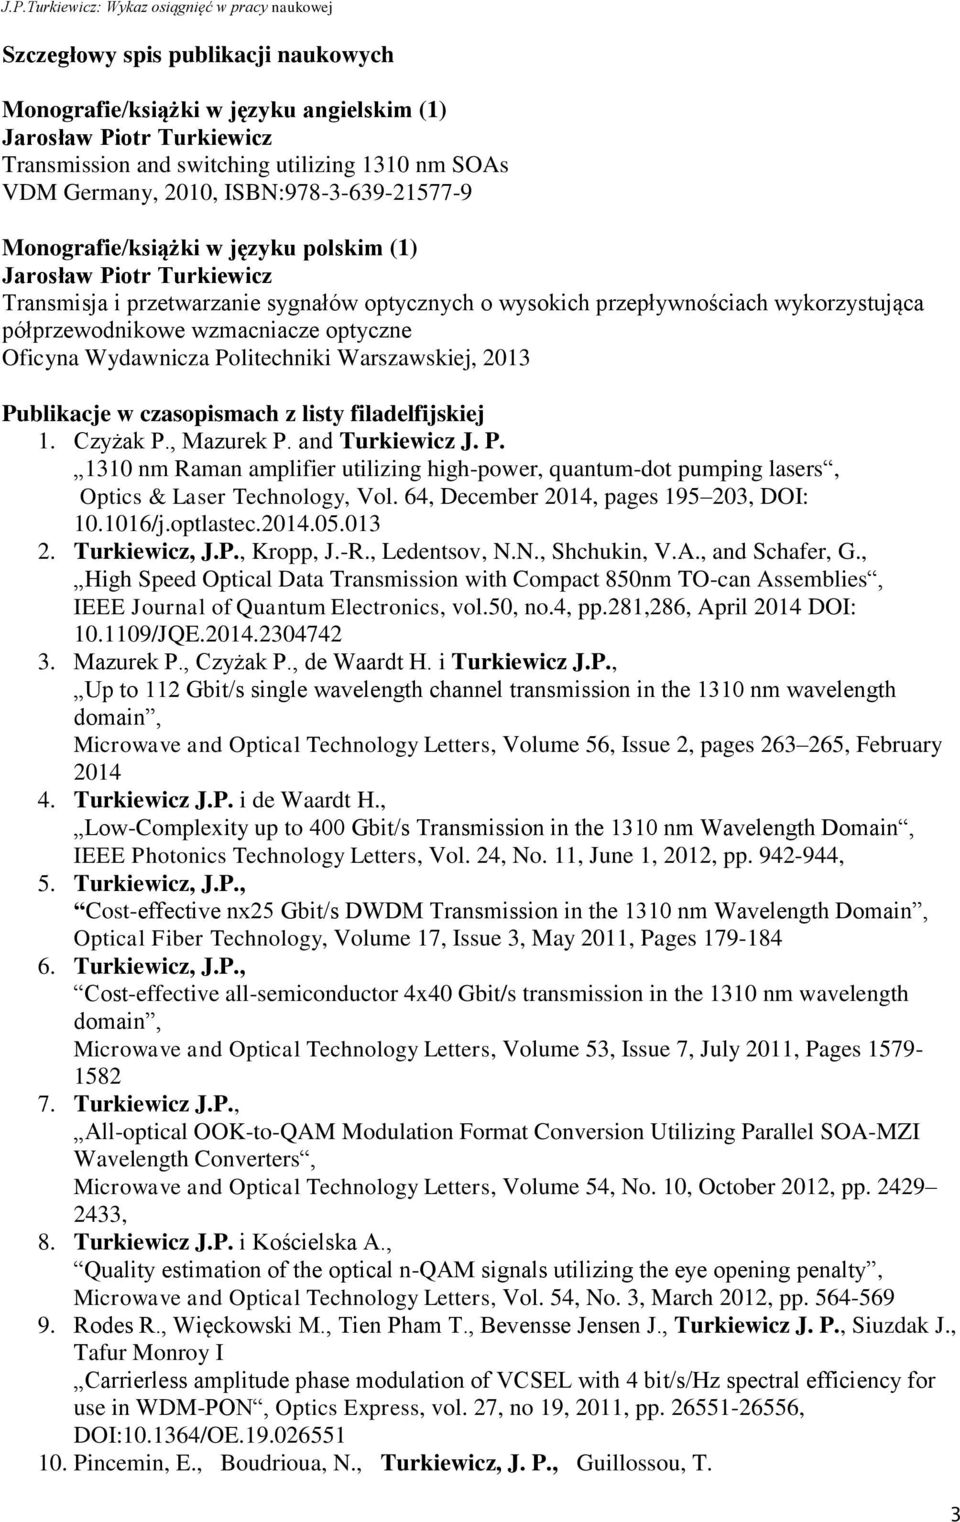 Oficyna Wydawnicza Politechniki Warszawskiej, 2013 Publikacje w czasopismach z listy filadelfijskiej 1. Czyżak P., Mazurek P. and Turkiewicz J. P. 1310 nm Raman amplifier utilizing high-power, quantum-dot pumping lasers, Optics & Laser Technology, Vol.